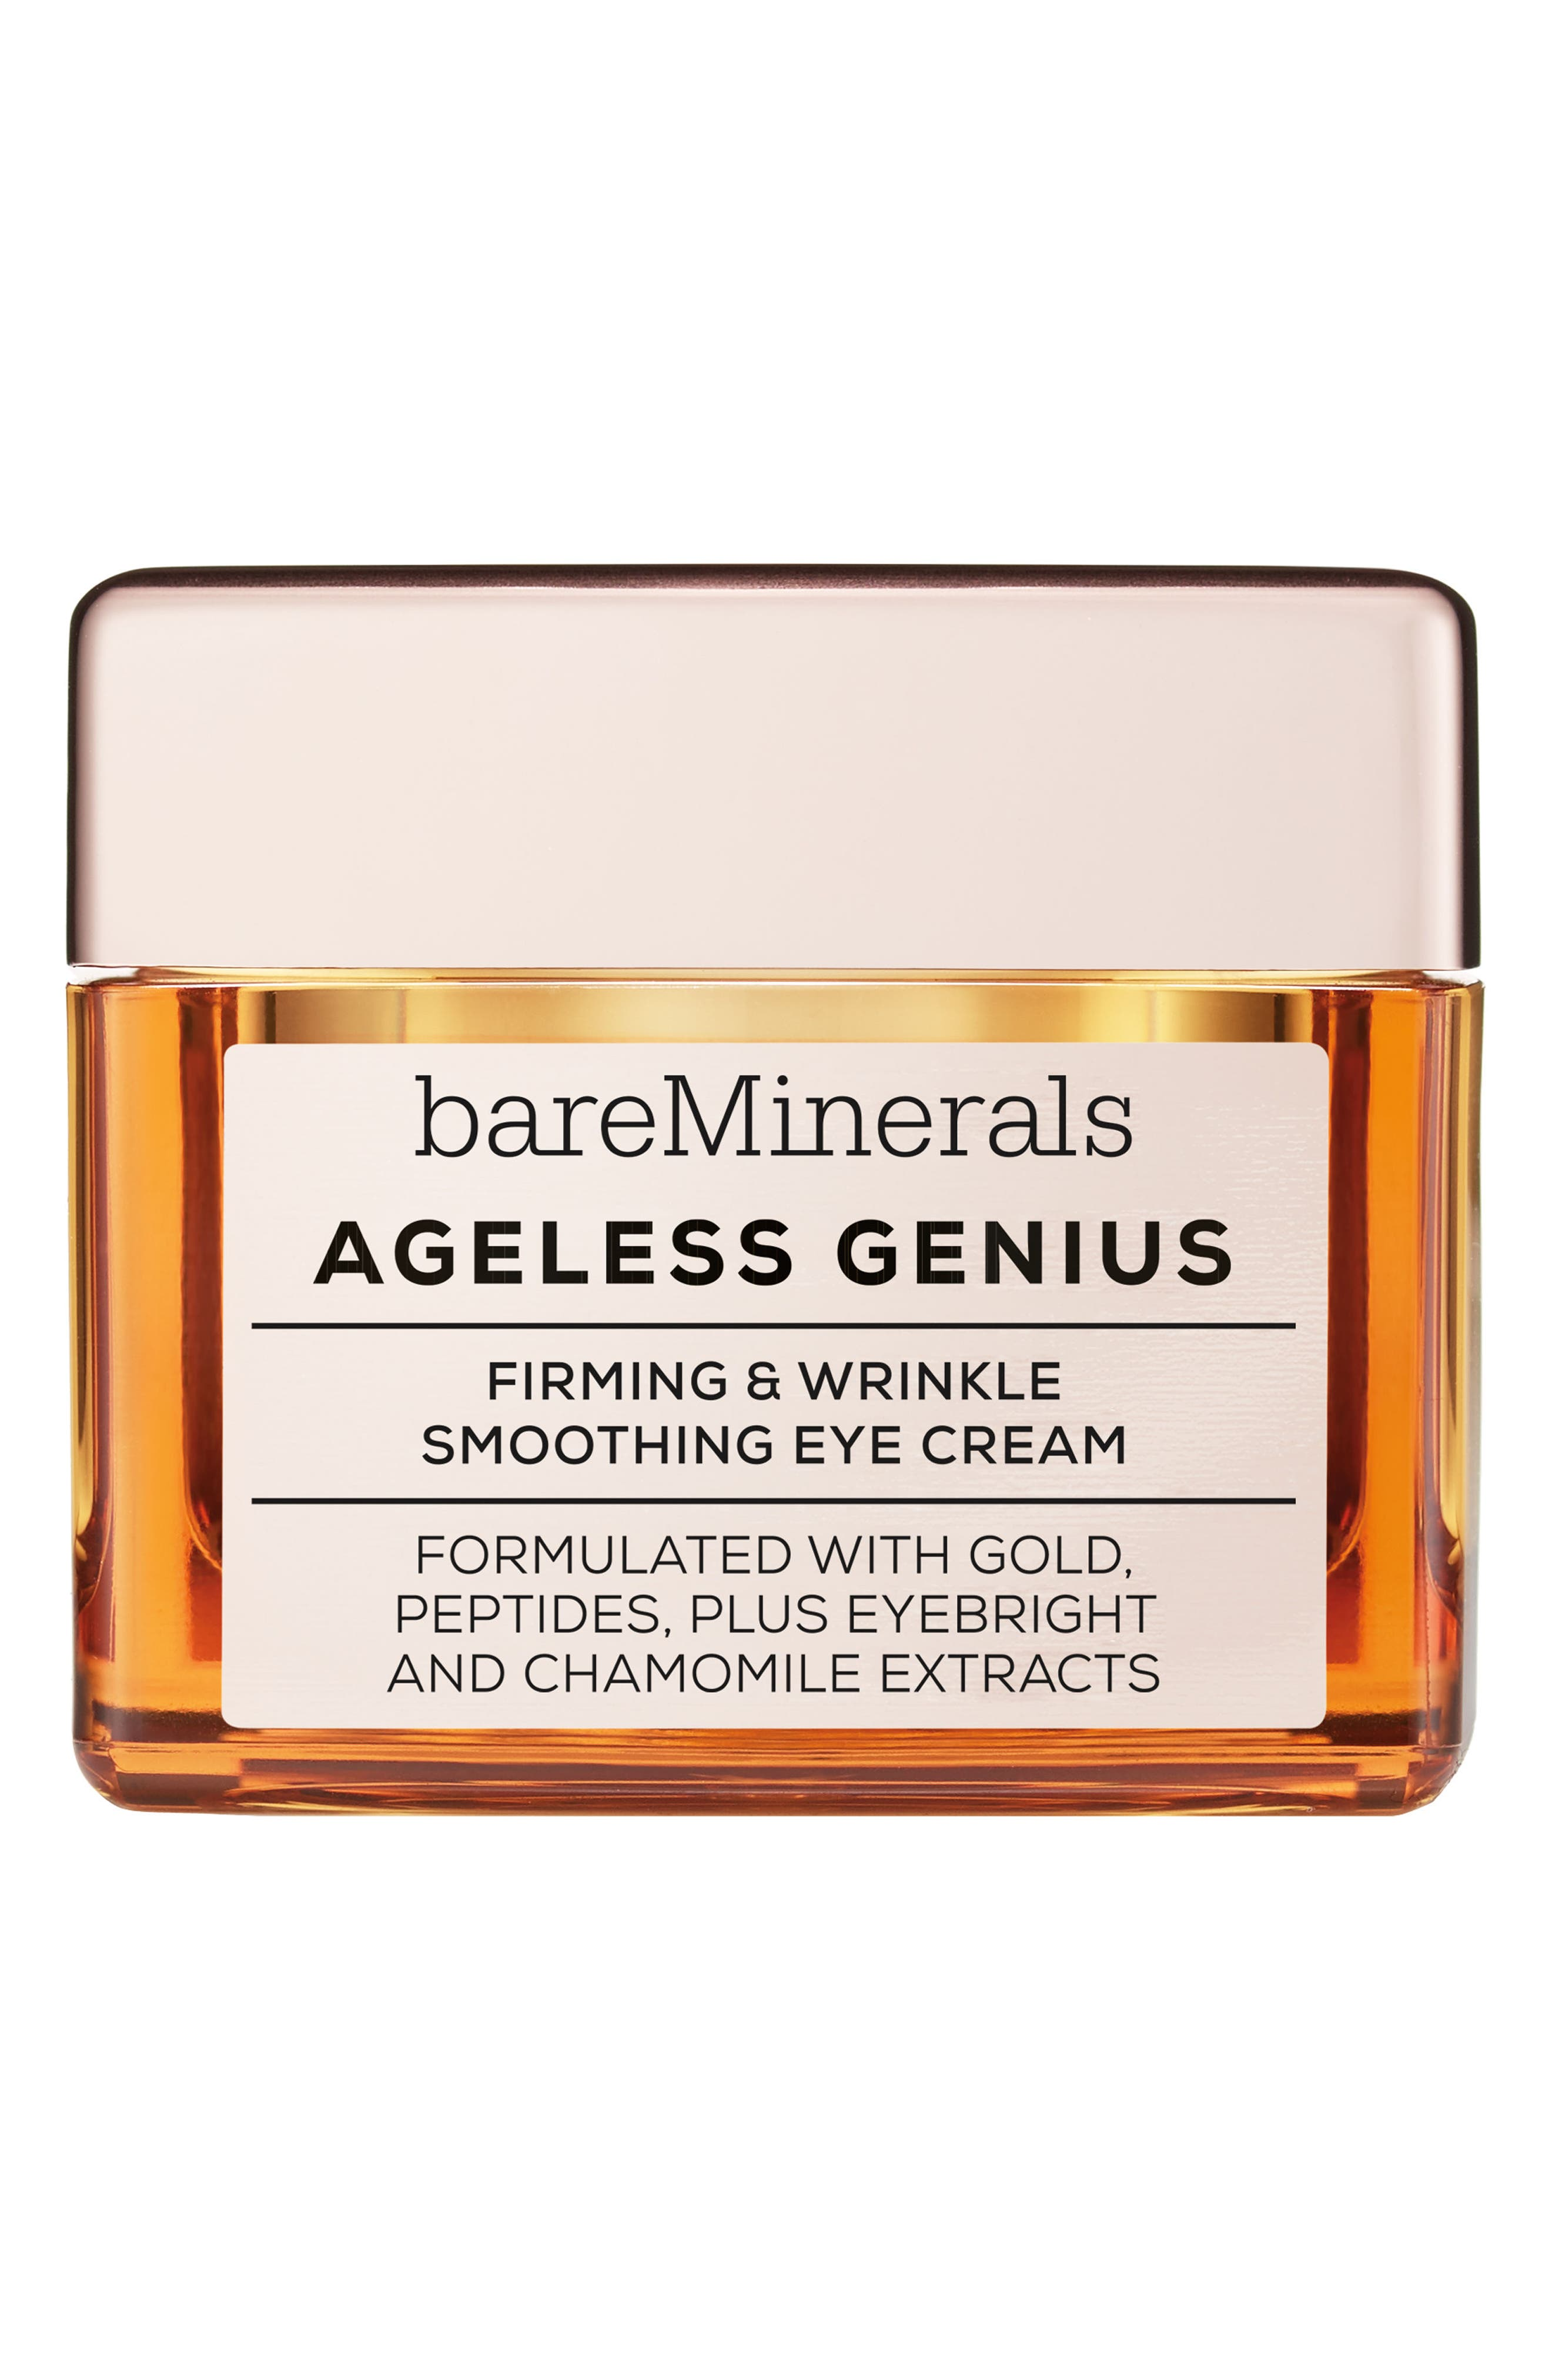 bareMinerals® Ageless Genius Firming & Wrinkle Smoothing Eye Cream